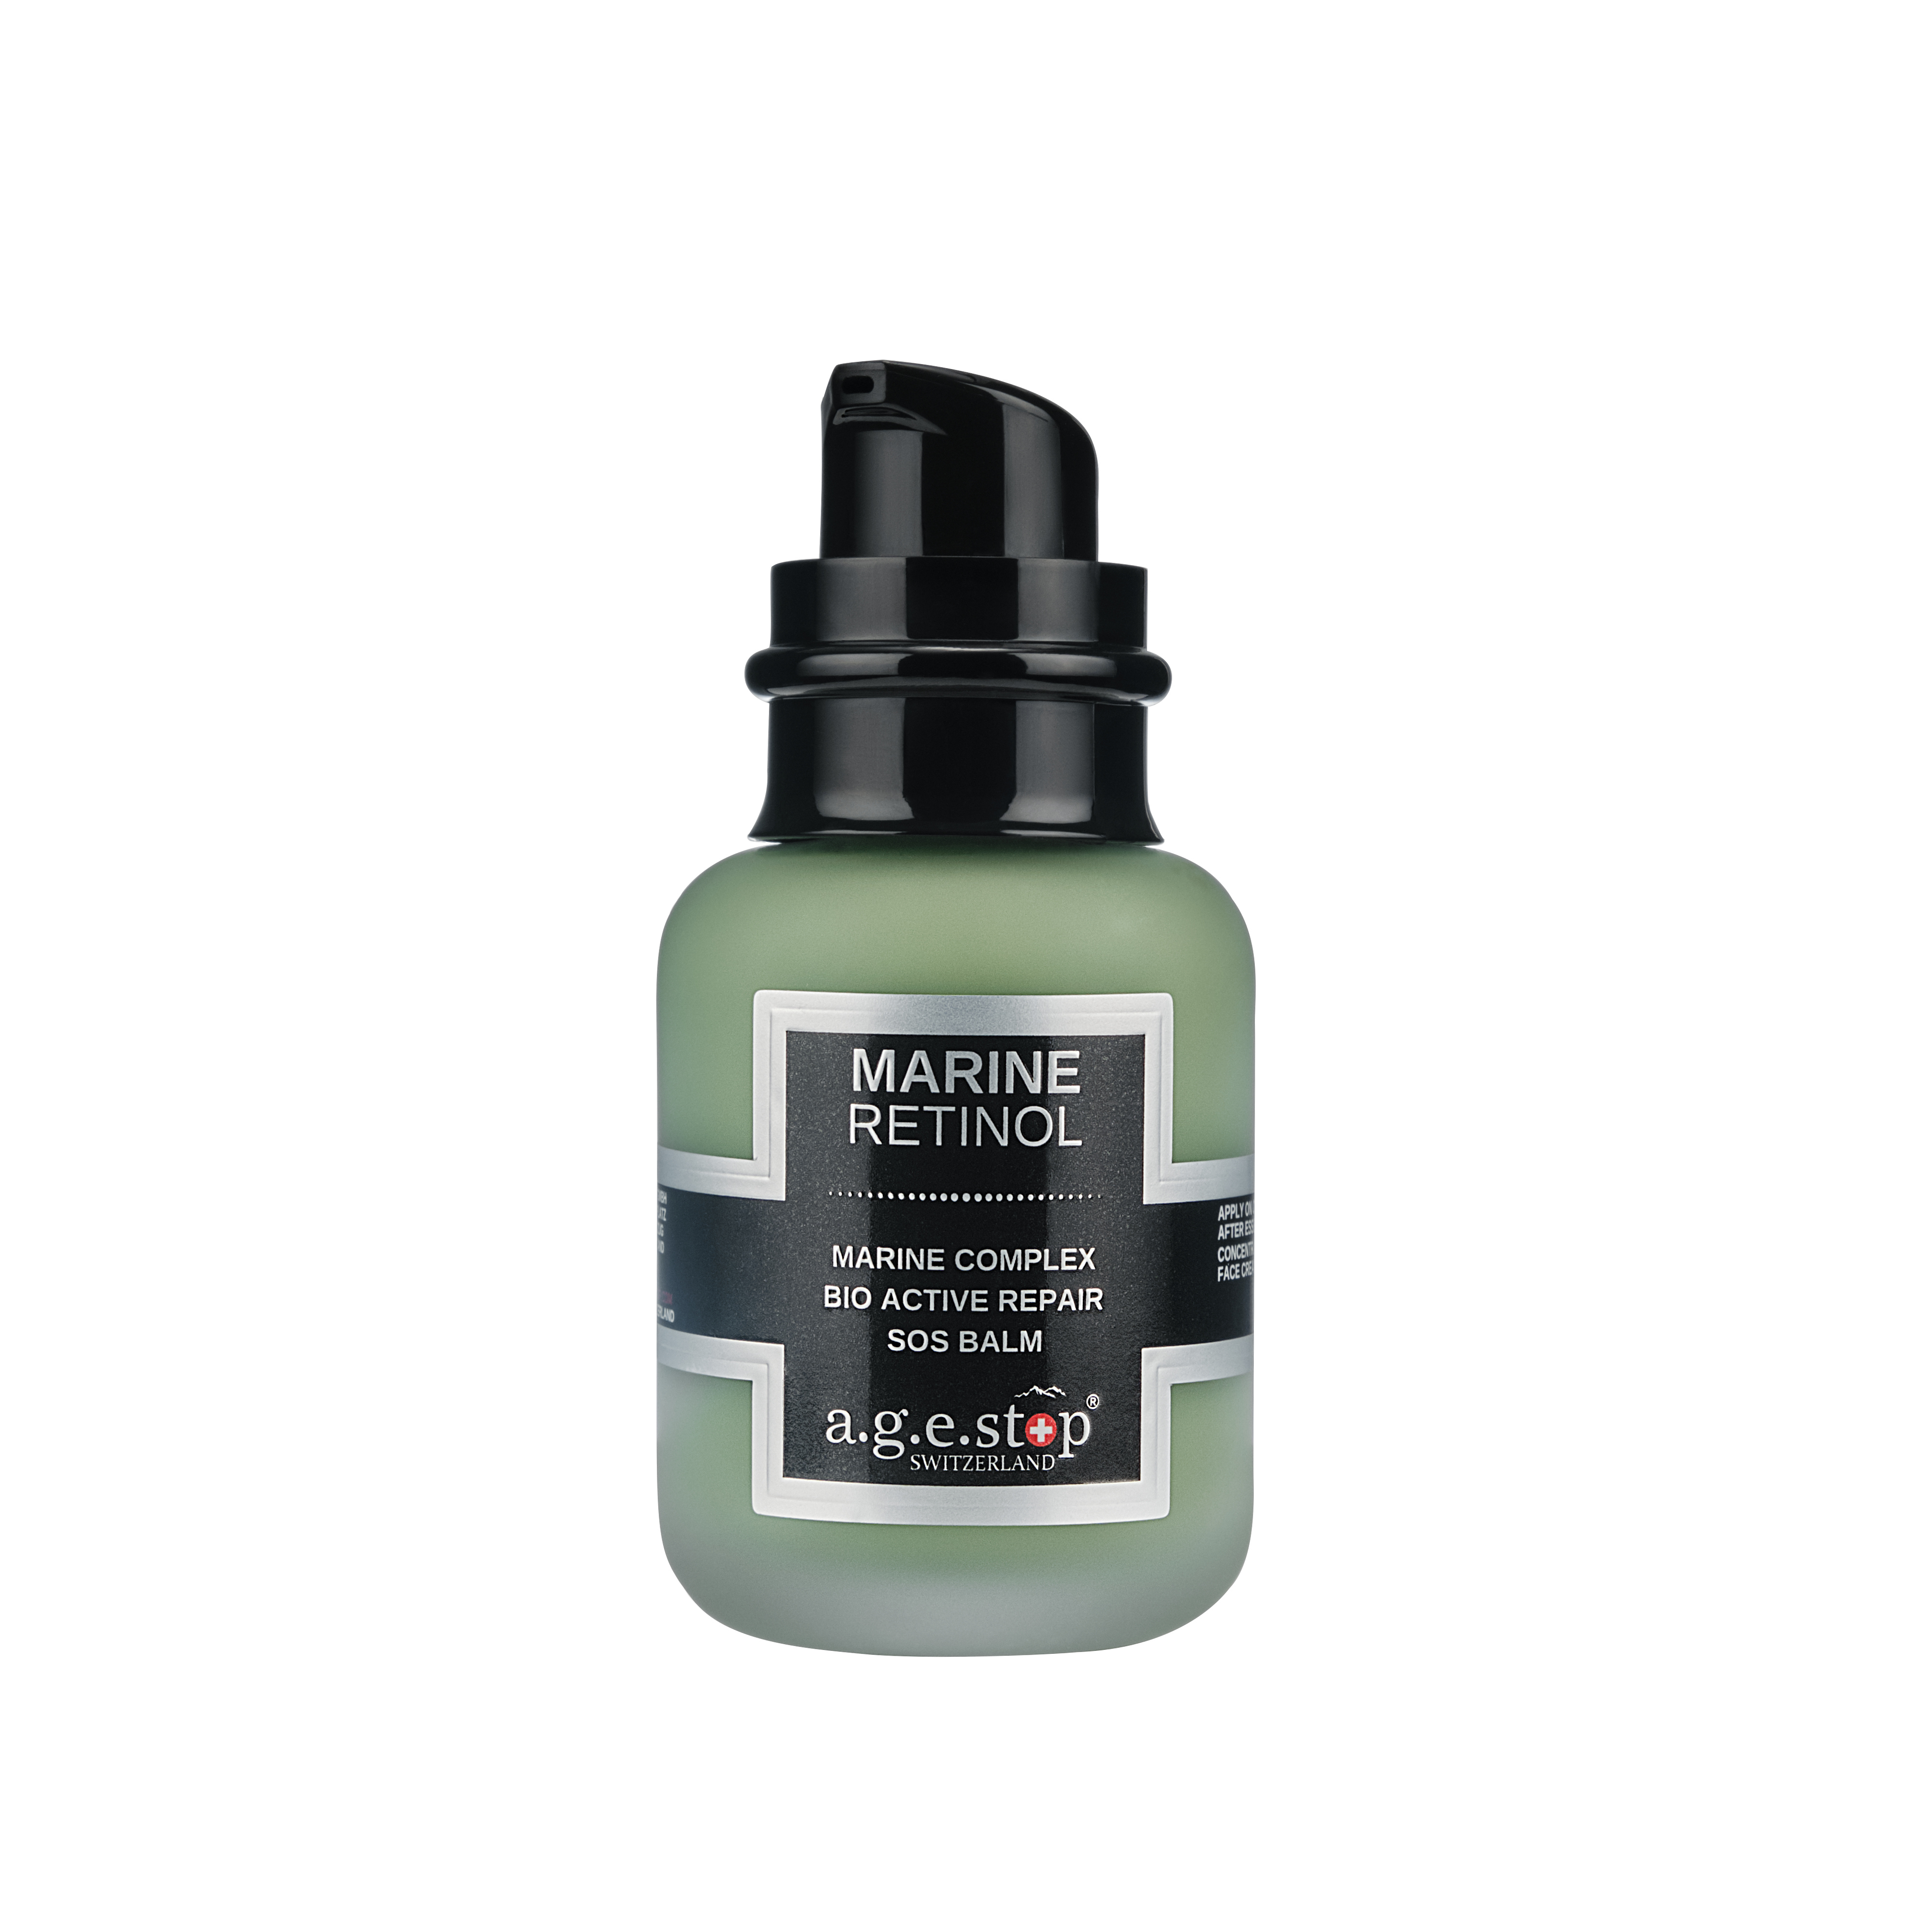 Age Stop Switzerland Offers Brand New Skincare Formulation Concepts That Promise Great Results